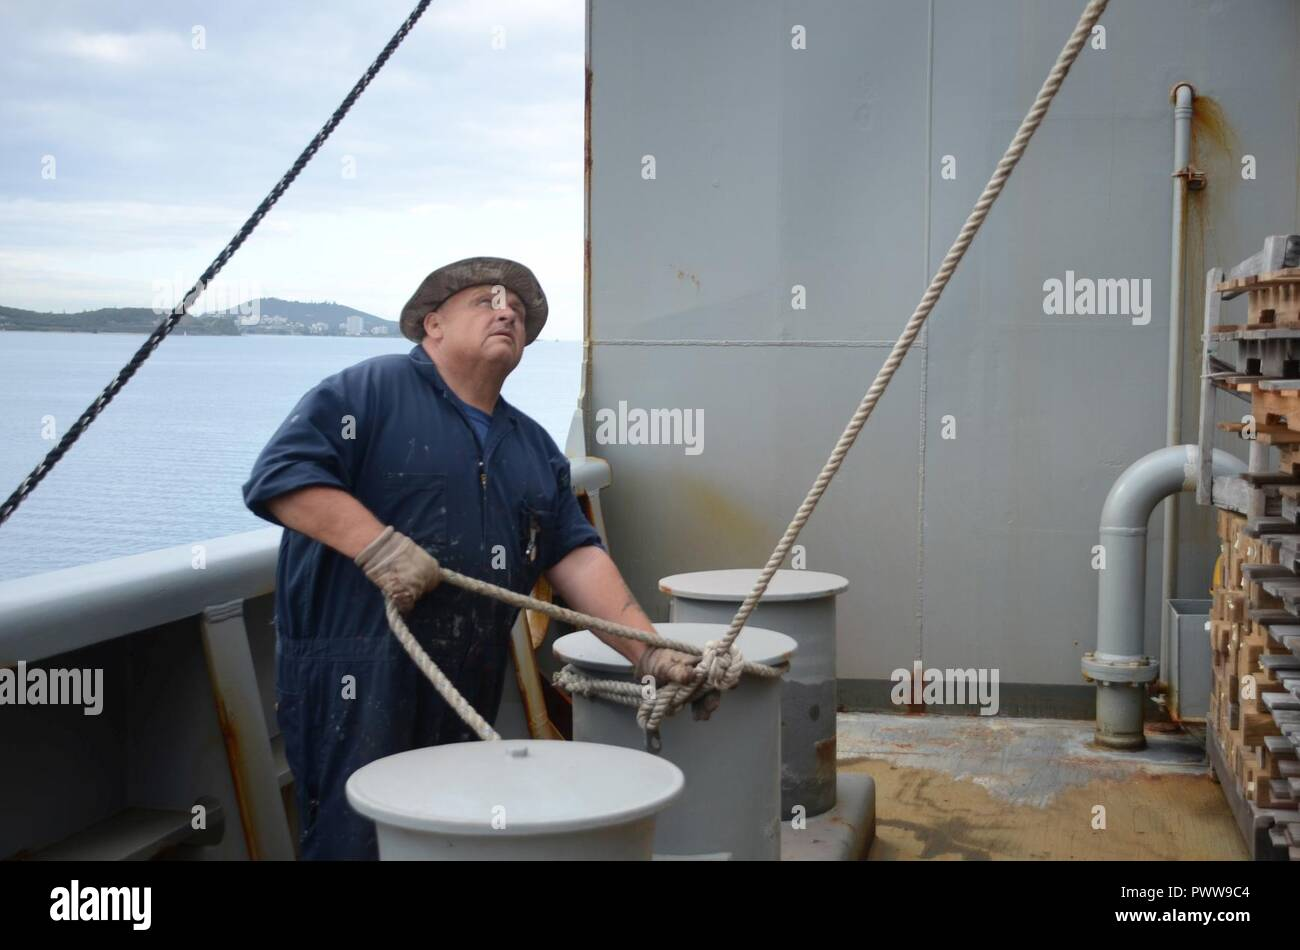 NOUMEA, New Caledonia (July 03, 2017) Robert Moore, Able-Bodied Seaman (maintenance) onboard USNS Sacagawea (T-AKE 2), assists in lift operations off shore Noumea, New Caledonia in support of Koa Moana 17, July 3. Koa Moana 17 is designed to improve theater security, and conduct law enforcement and infantry training in the Pacific region in order to enhance interoperability with partner nations. ( Stock Photo